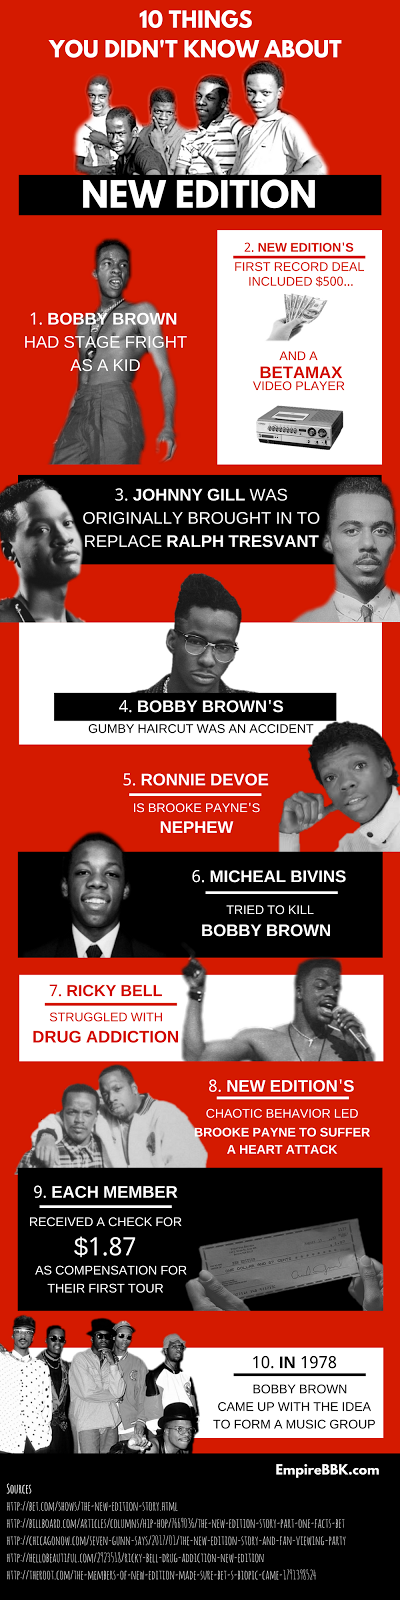 The New Edition Story Infographic